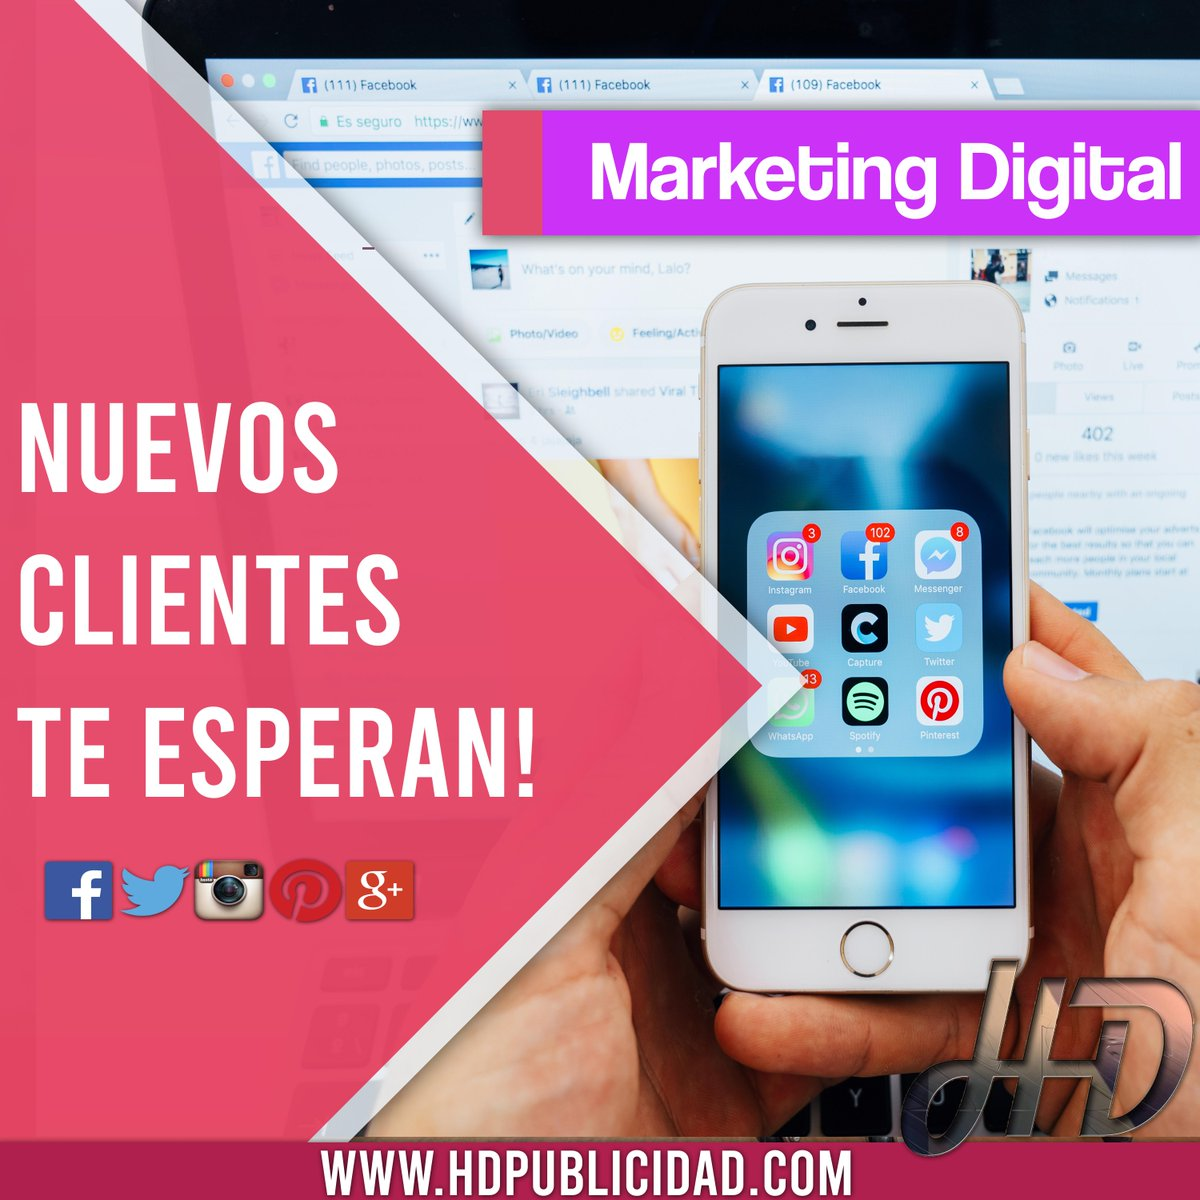 En #Hd te ayudamos a conseguir #Nuevos #Clientes🙌 📊💪 ~Aumentamos tus #Ventas📣~ >Marketing Digital >Aumentamos tus ventas >Publicidad en Redes sociales Consultanos HD Agencia Digital https://t.co/KHsJe35Vor ▶️📱Whatsapp: 0341-6663229 info@hdpublicidad.com https://t.co/DOb9Y982Se